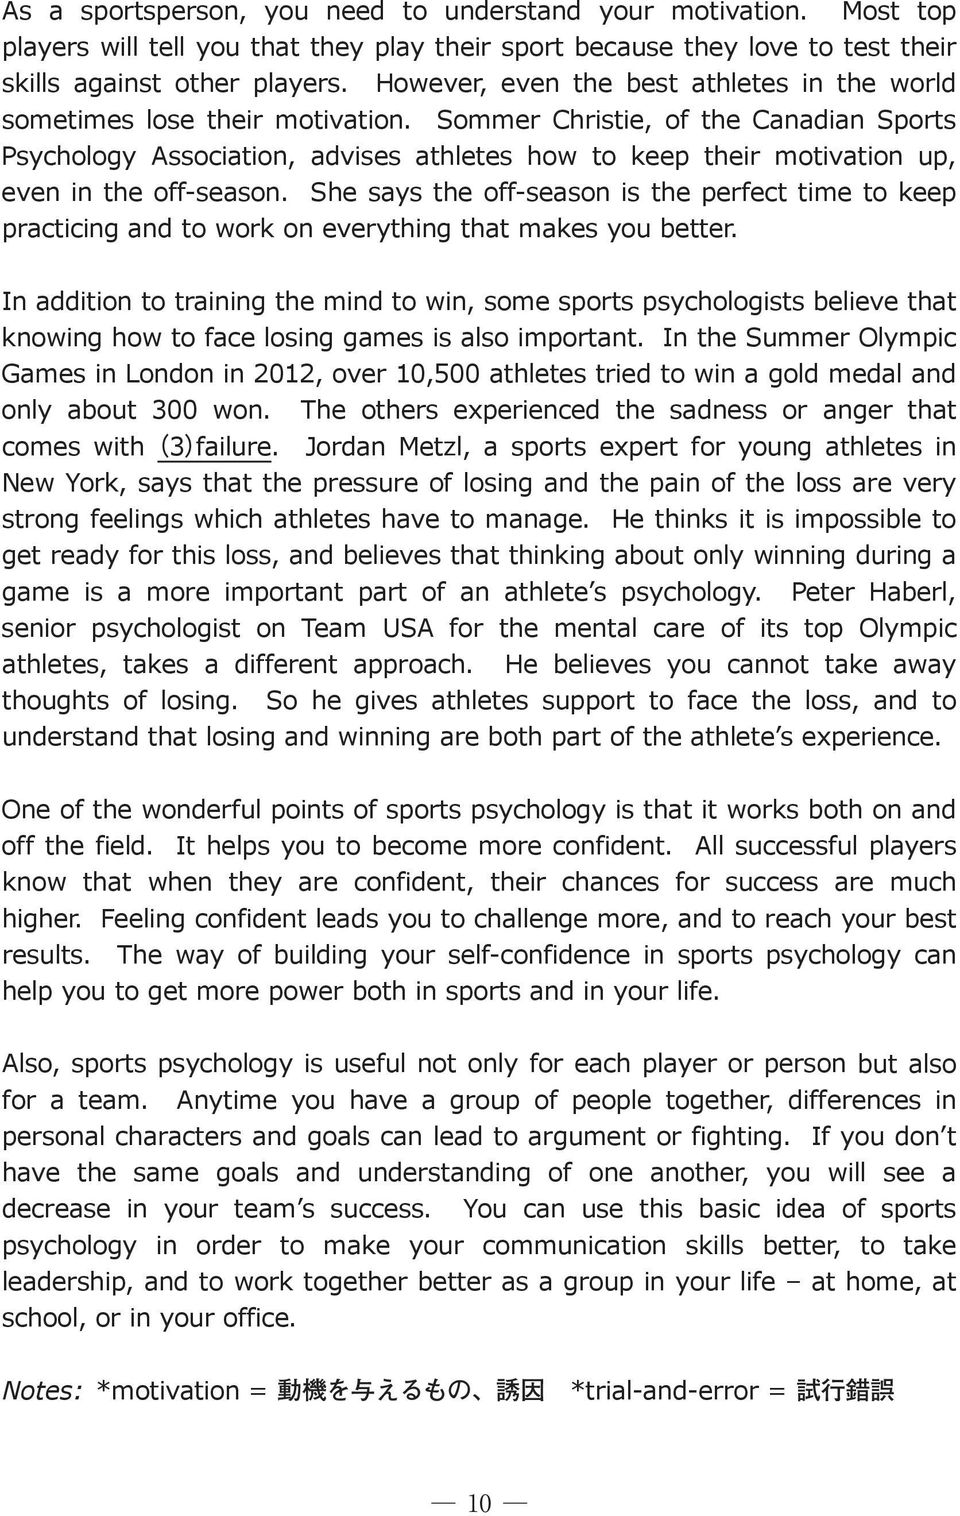 Sommer Christie, of the Canadian Sports Psychology Association, advises athletes how to keep their motivation up, even in the off-season.